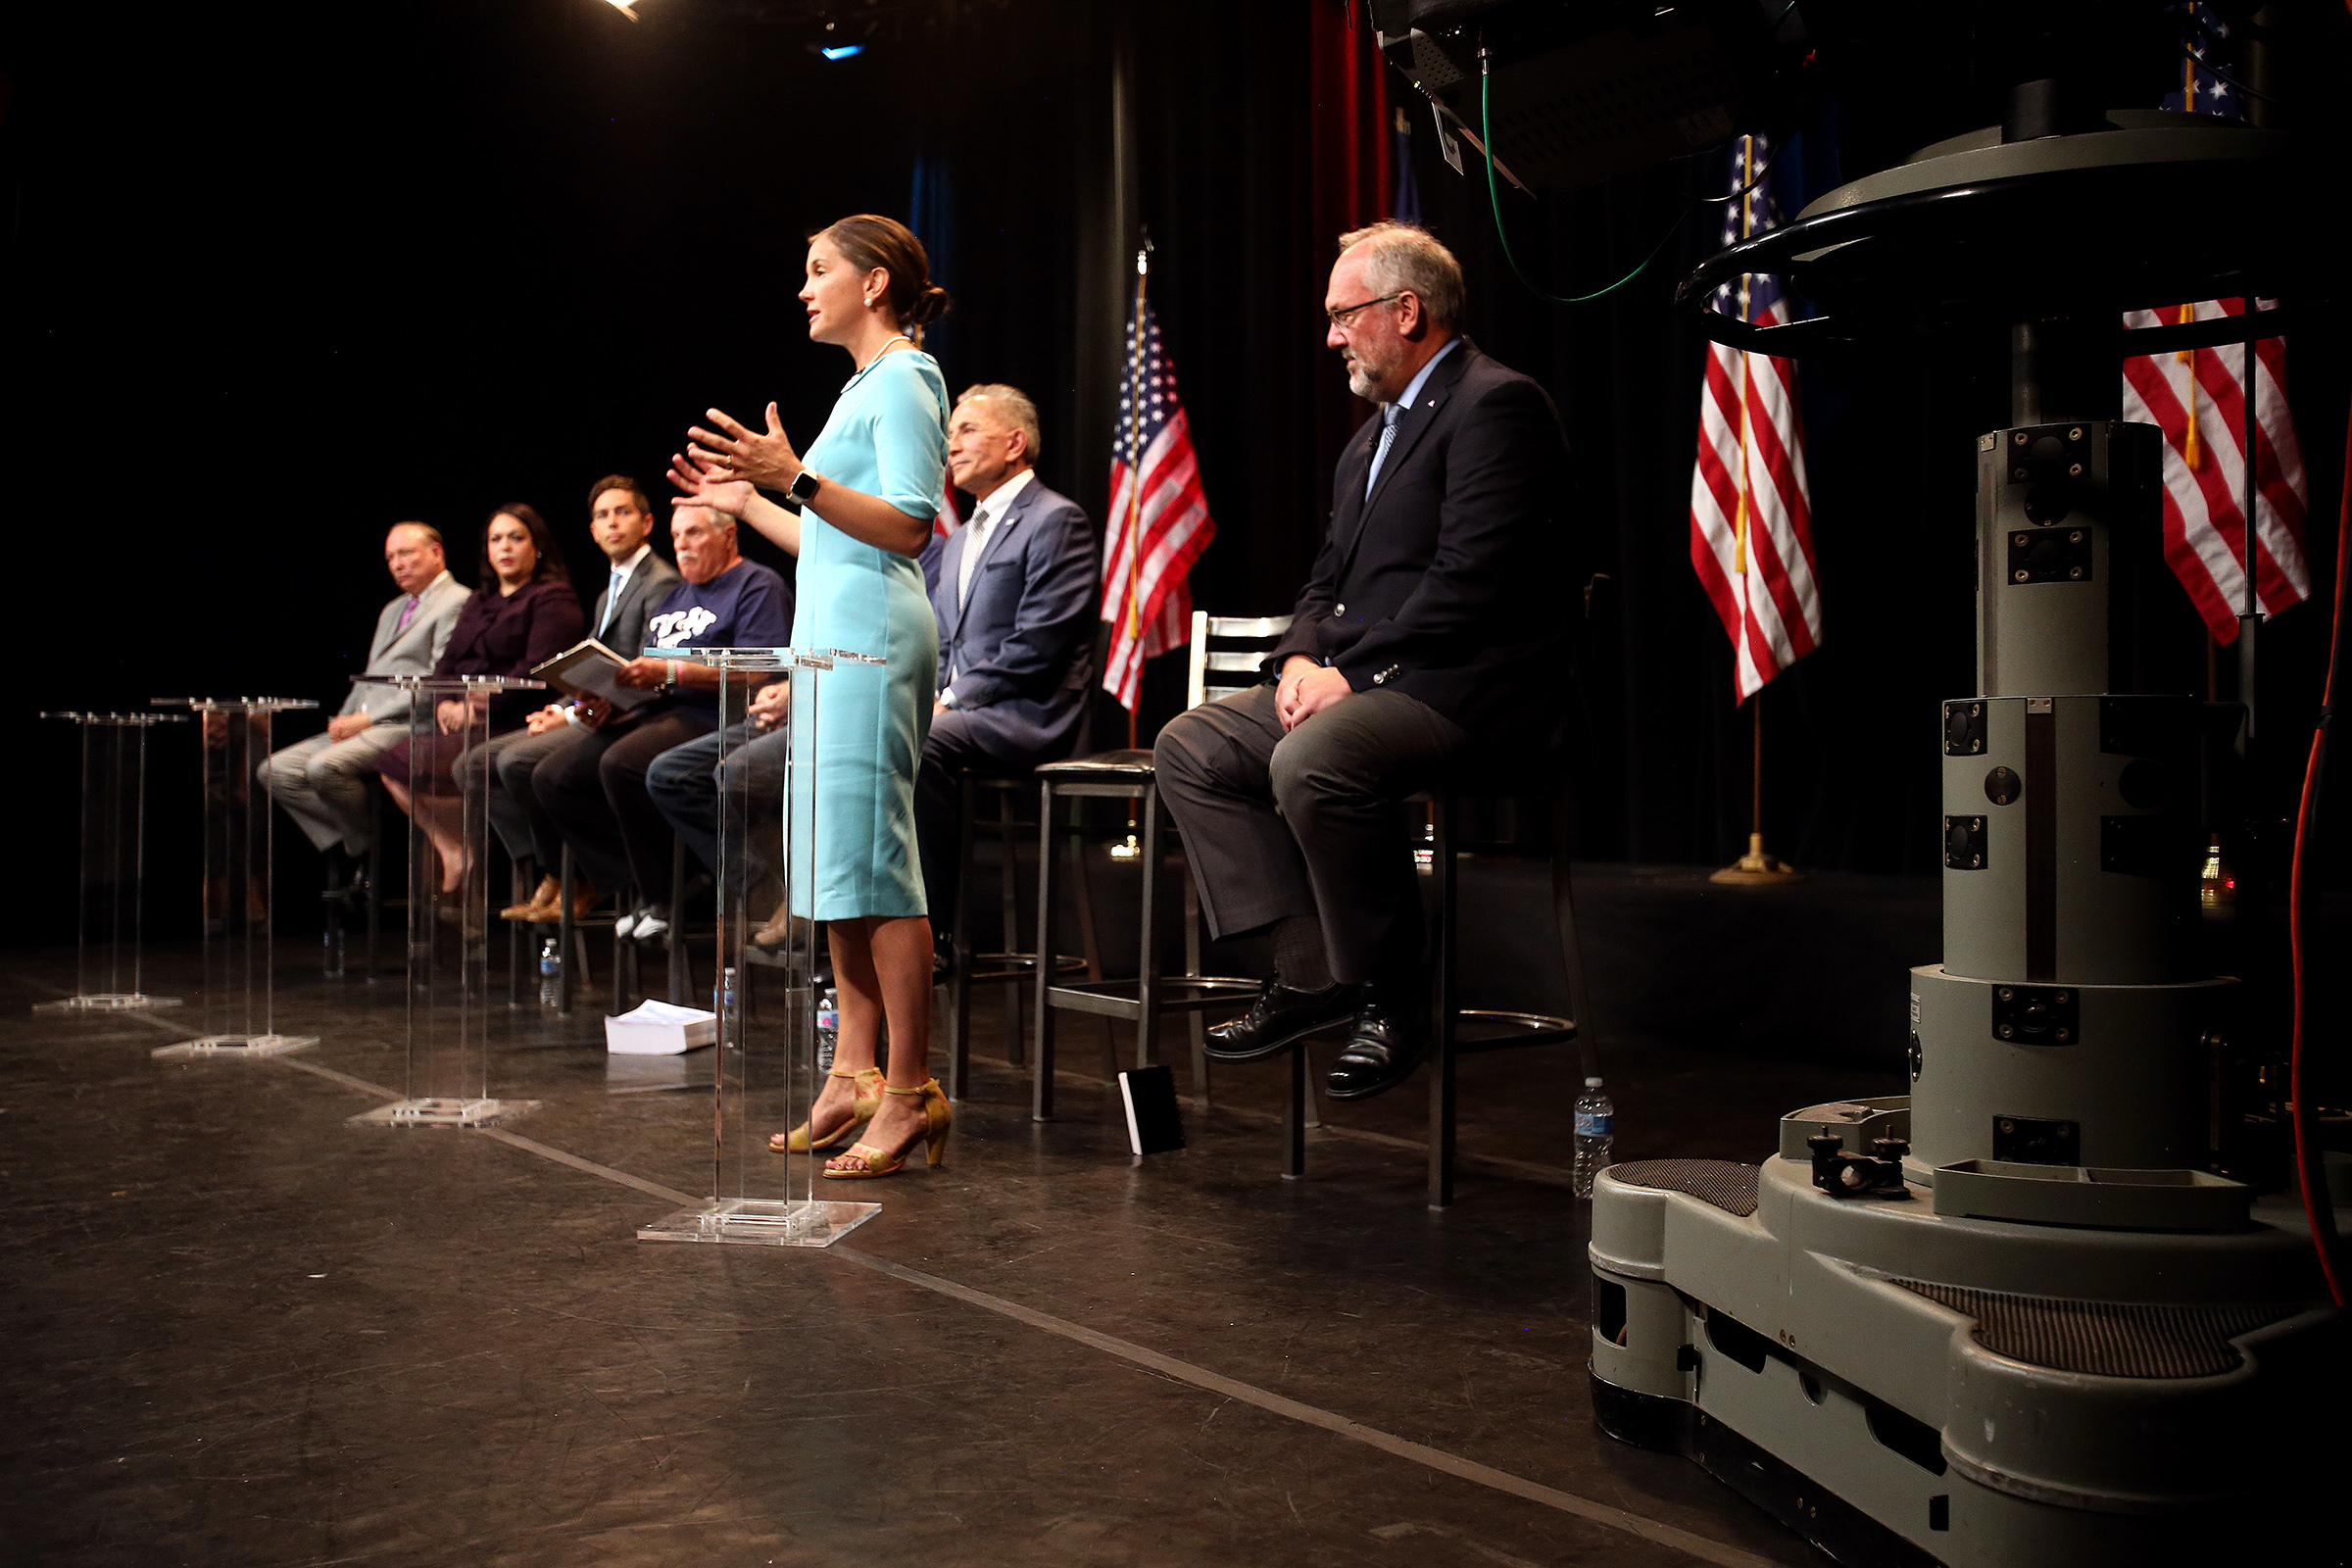 Erin Mendenhall answers a question during a debate with other Salt Lake City mayoral candidates in Salt Lake City on Monday, July 15, 2019. The debate was broadcast live from KSL-TV studios.